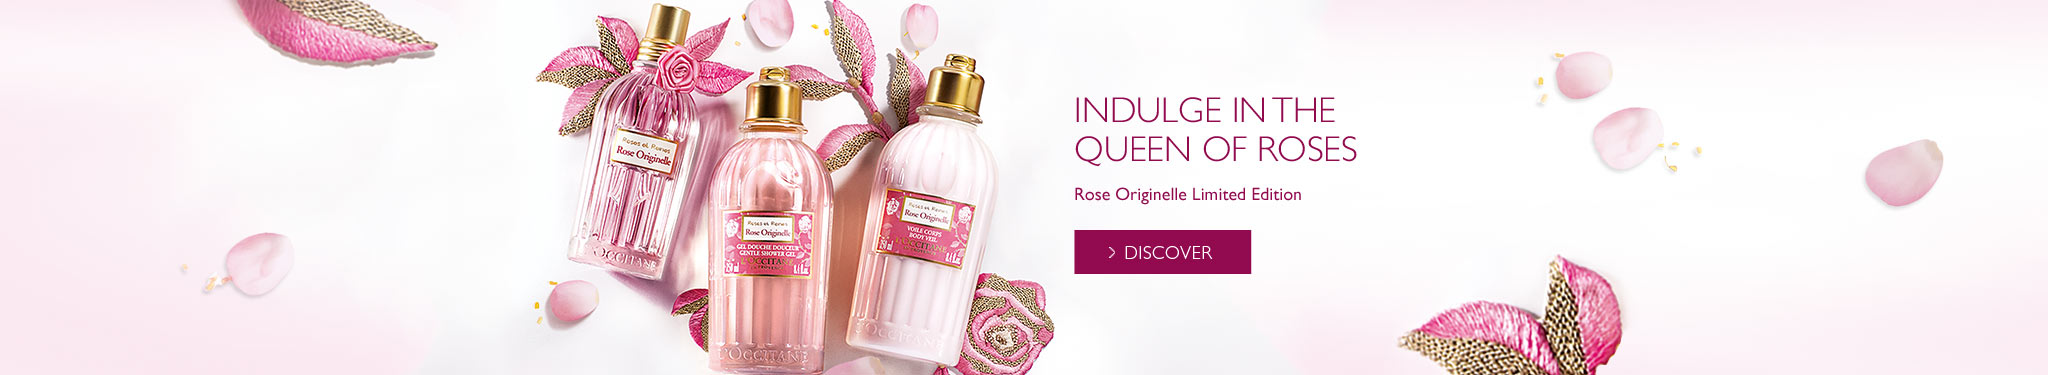 Indulge in the new limited edition rose originelle range